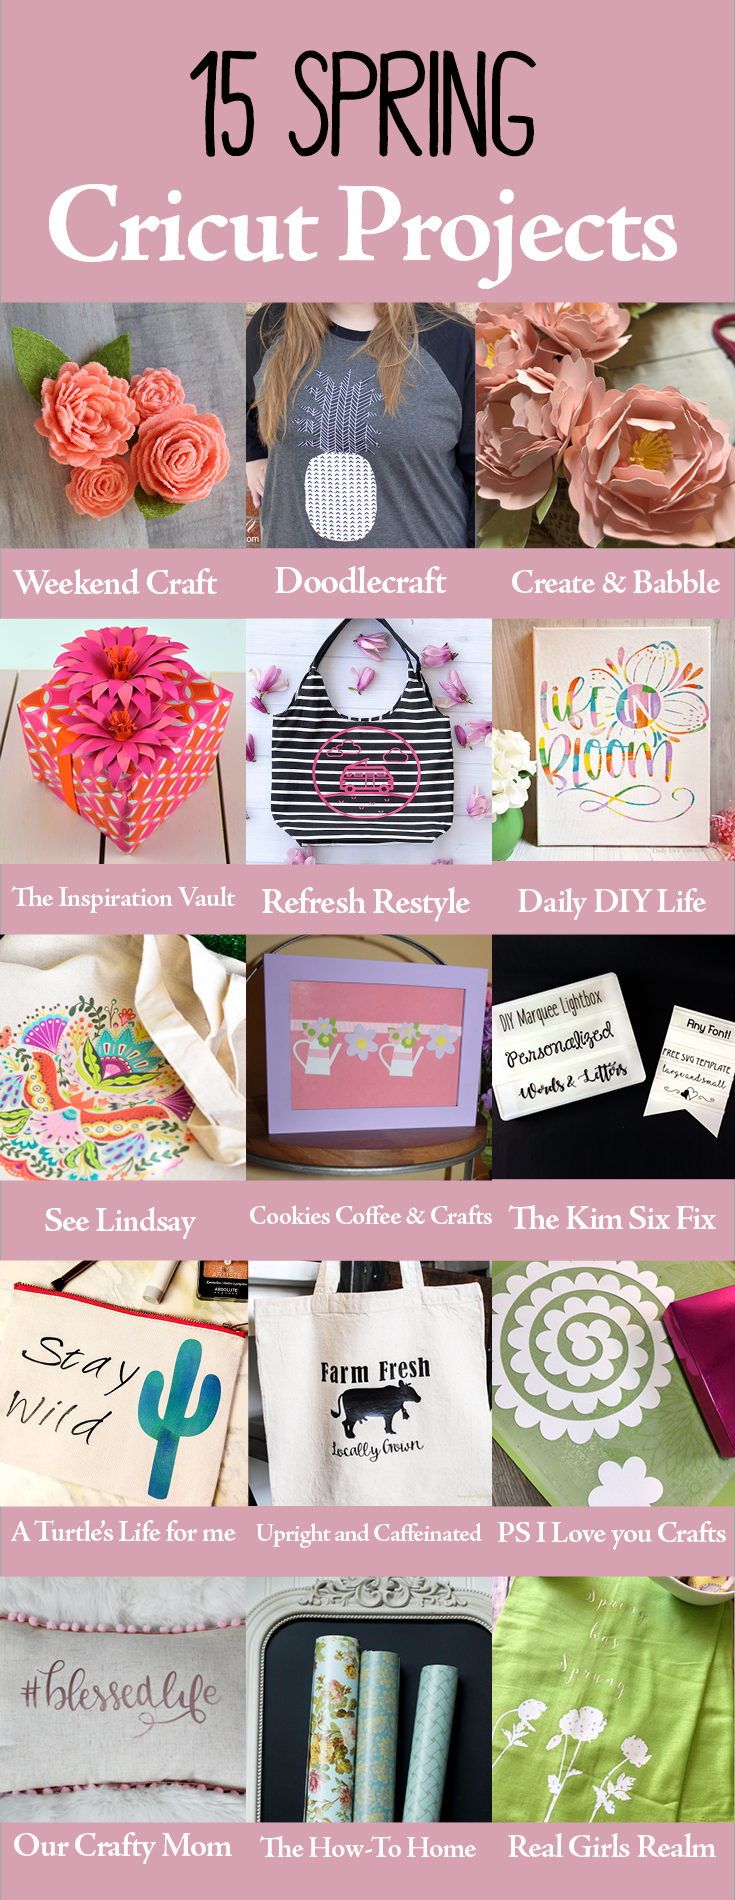 15_Spring_Cricut_Projects